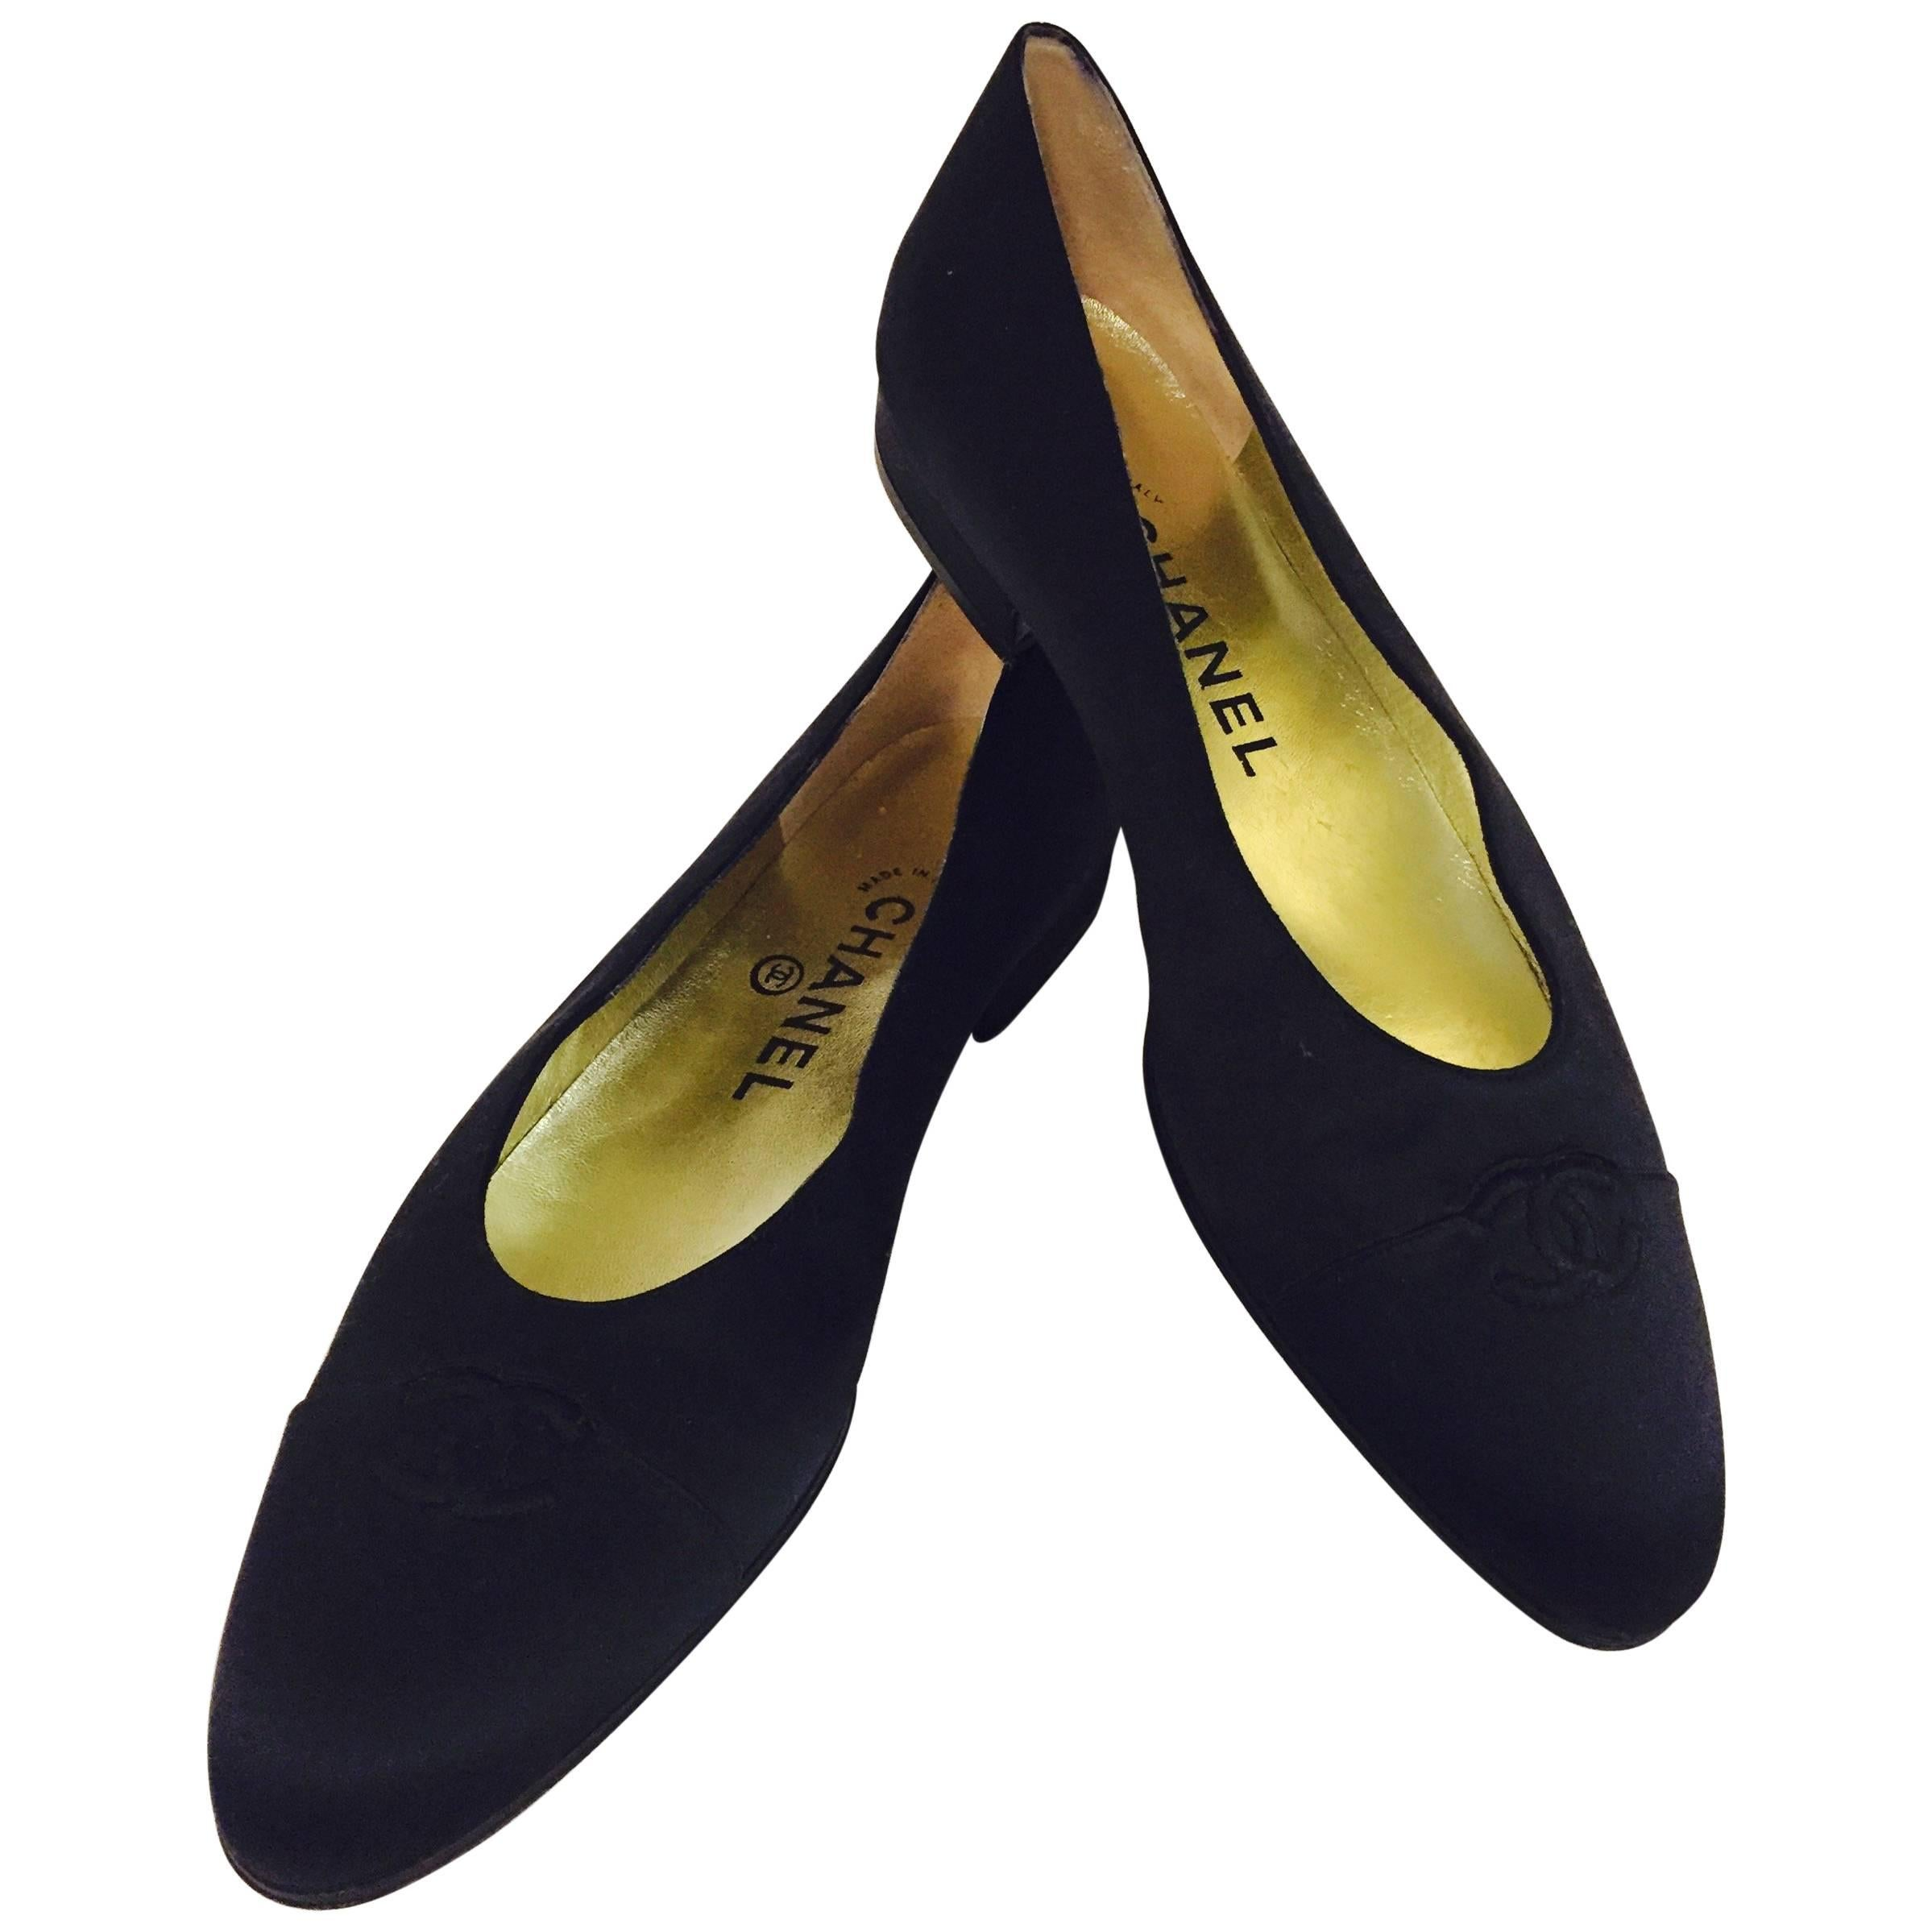 4cff25fbe45f Classic Collections - Fashion Shoes - 1stdibs